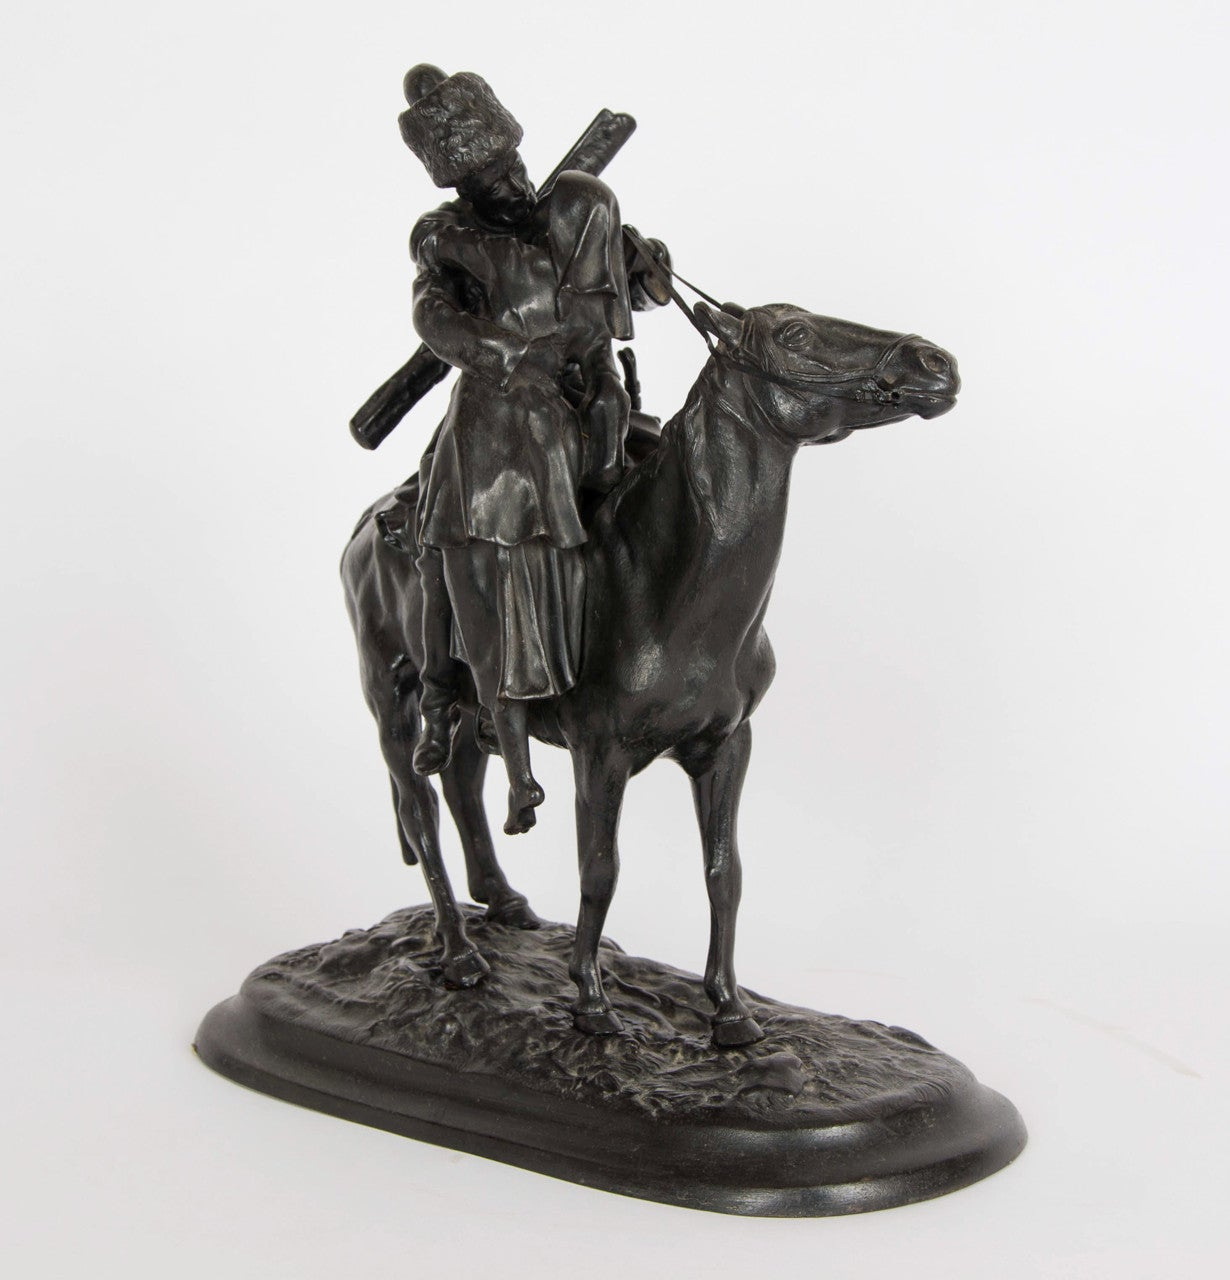 Russian Cast Iron Figure of a Cossack on Horseback For Sale 1